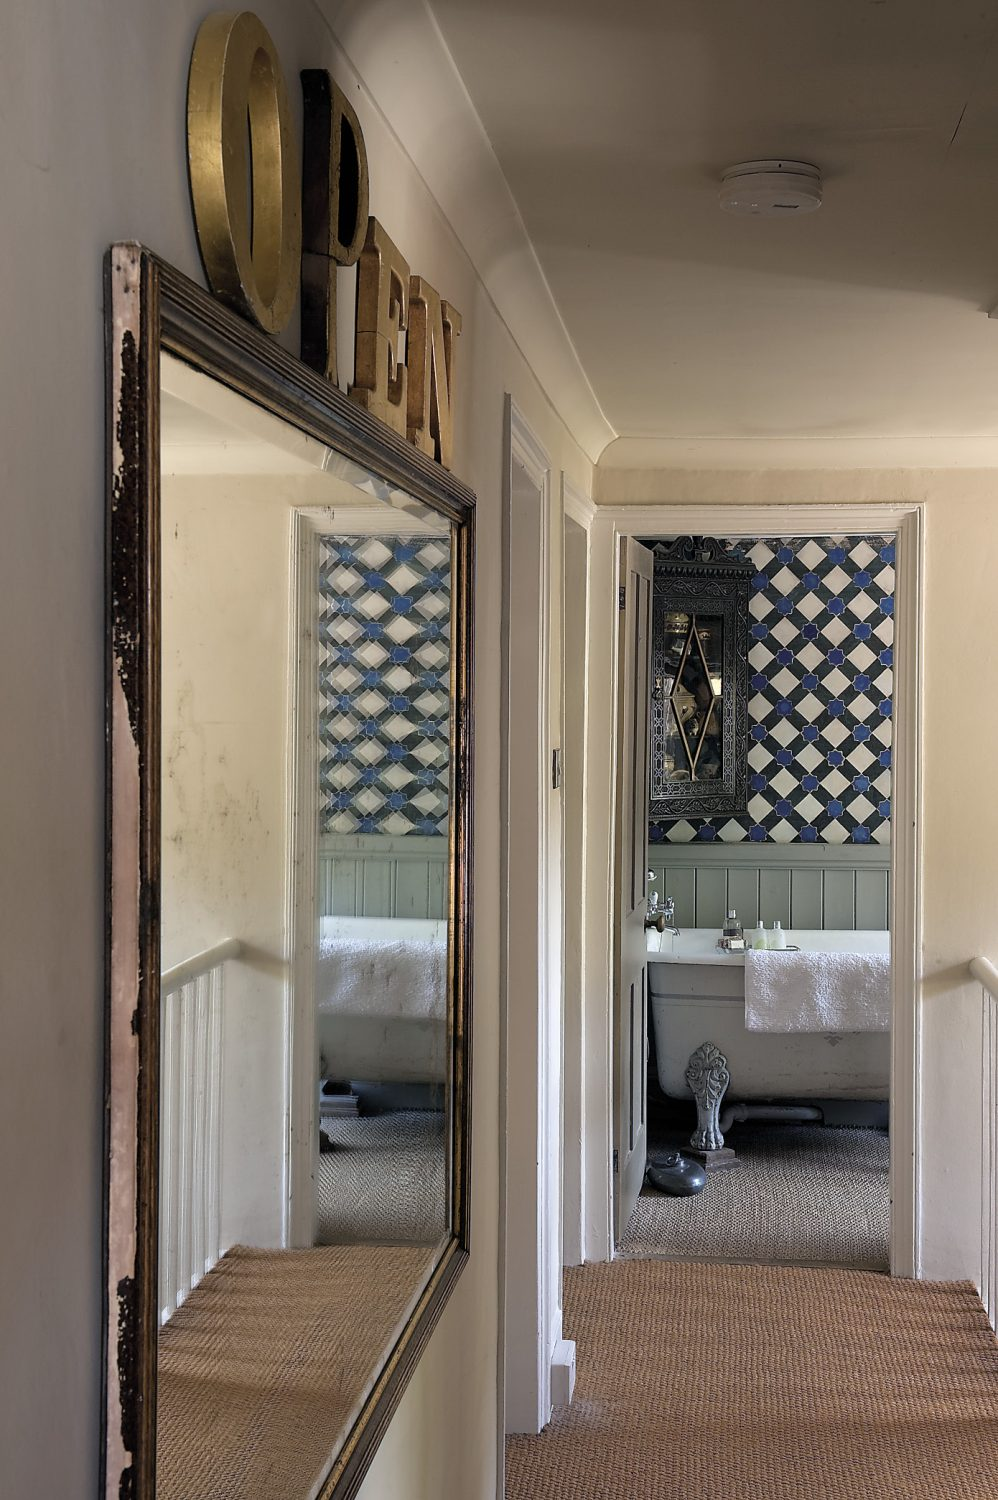 The view into the bathroom, past a huge gilt mirror